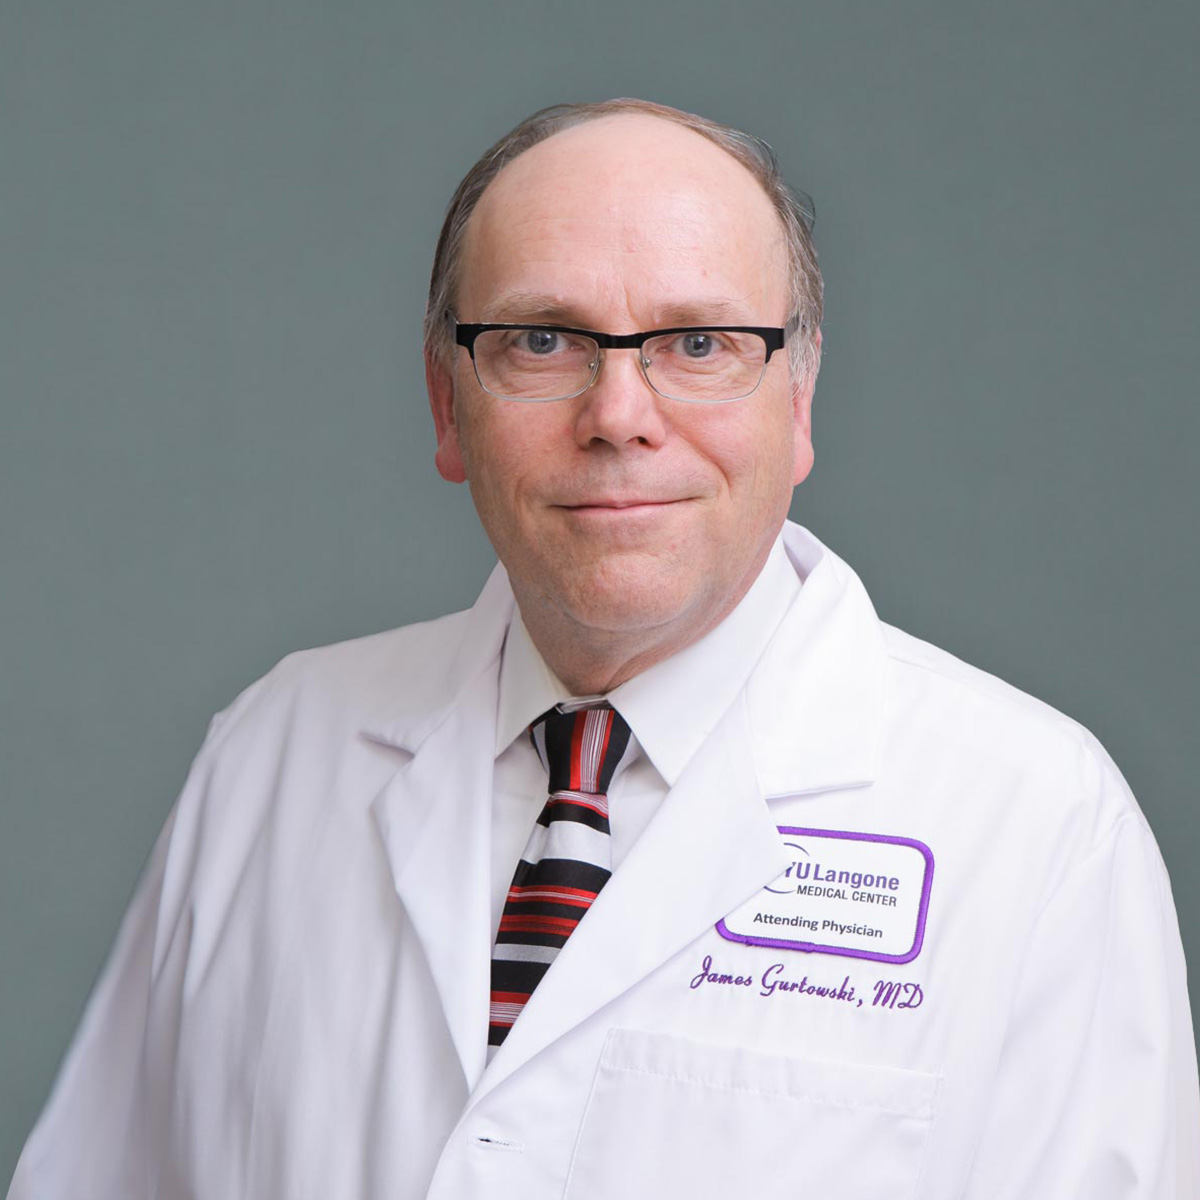 James Gurtowski,MD. Orthopedic Surgery, Hip & Knee Reconstruction